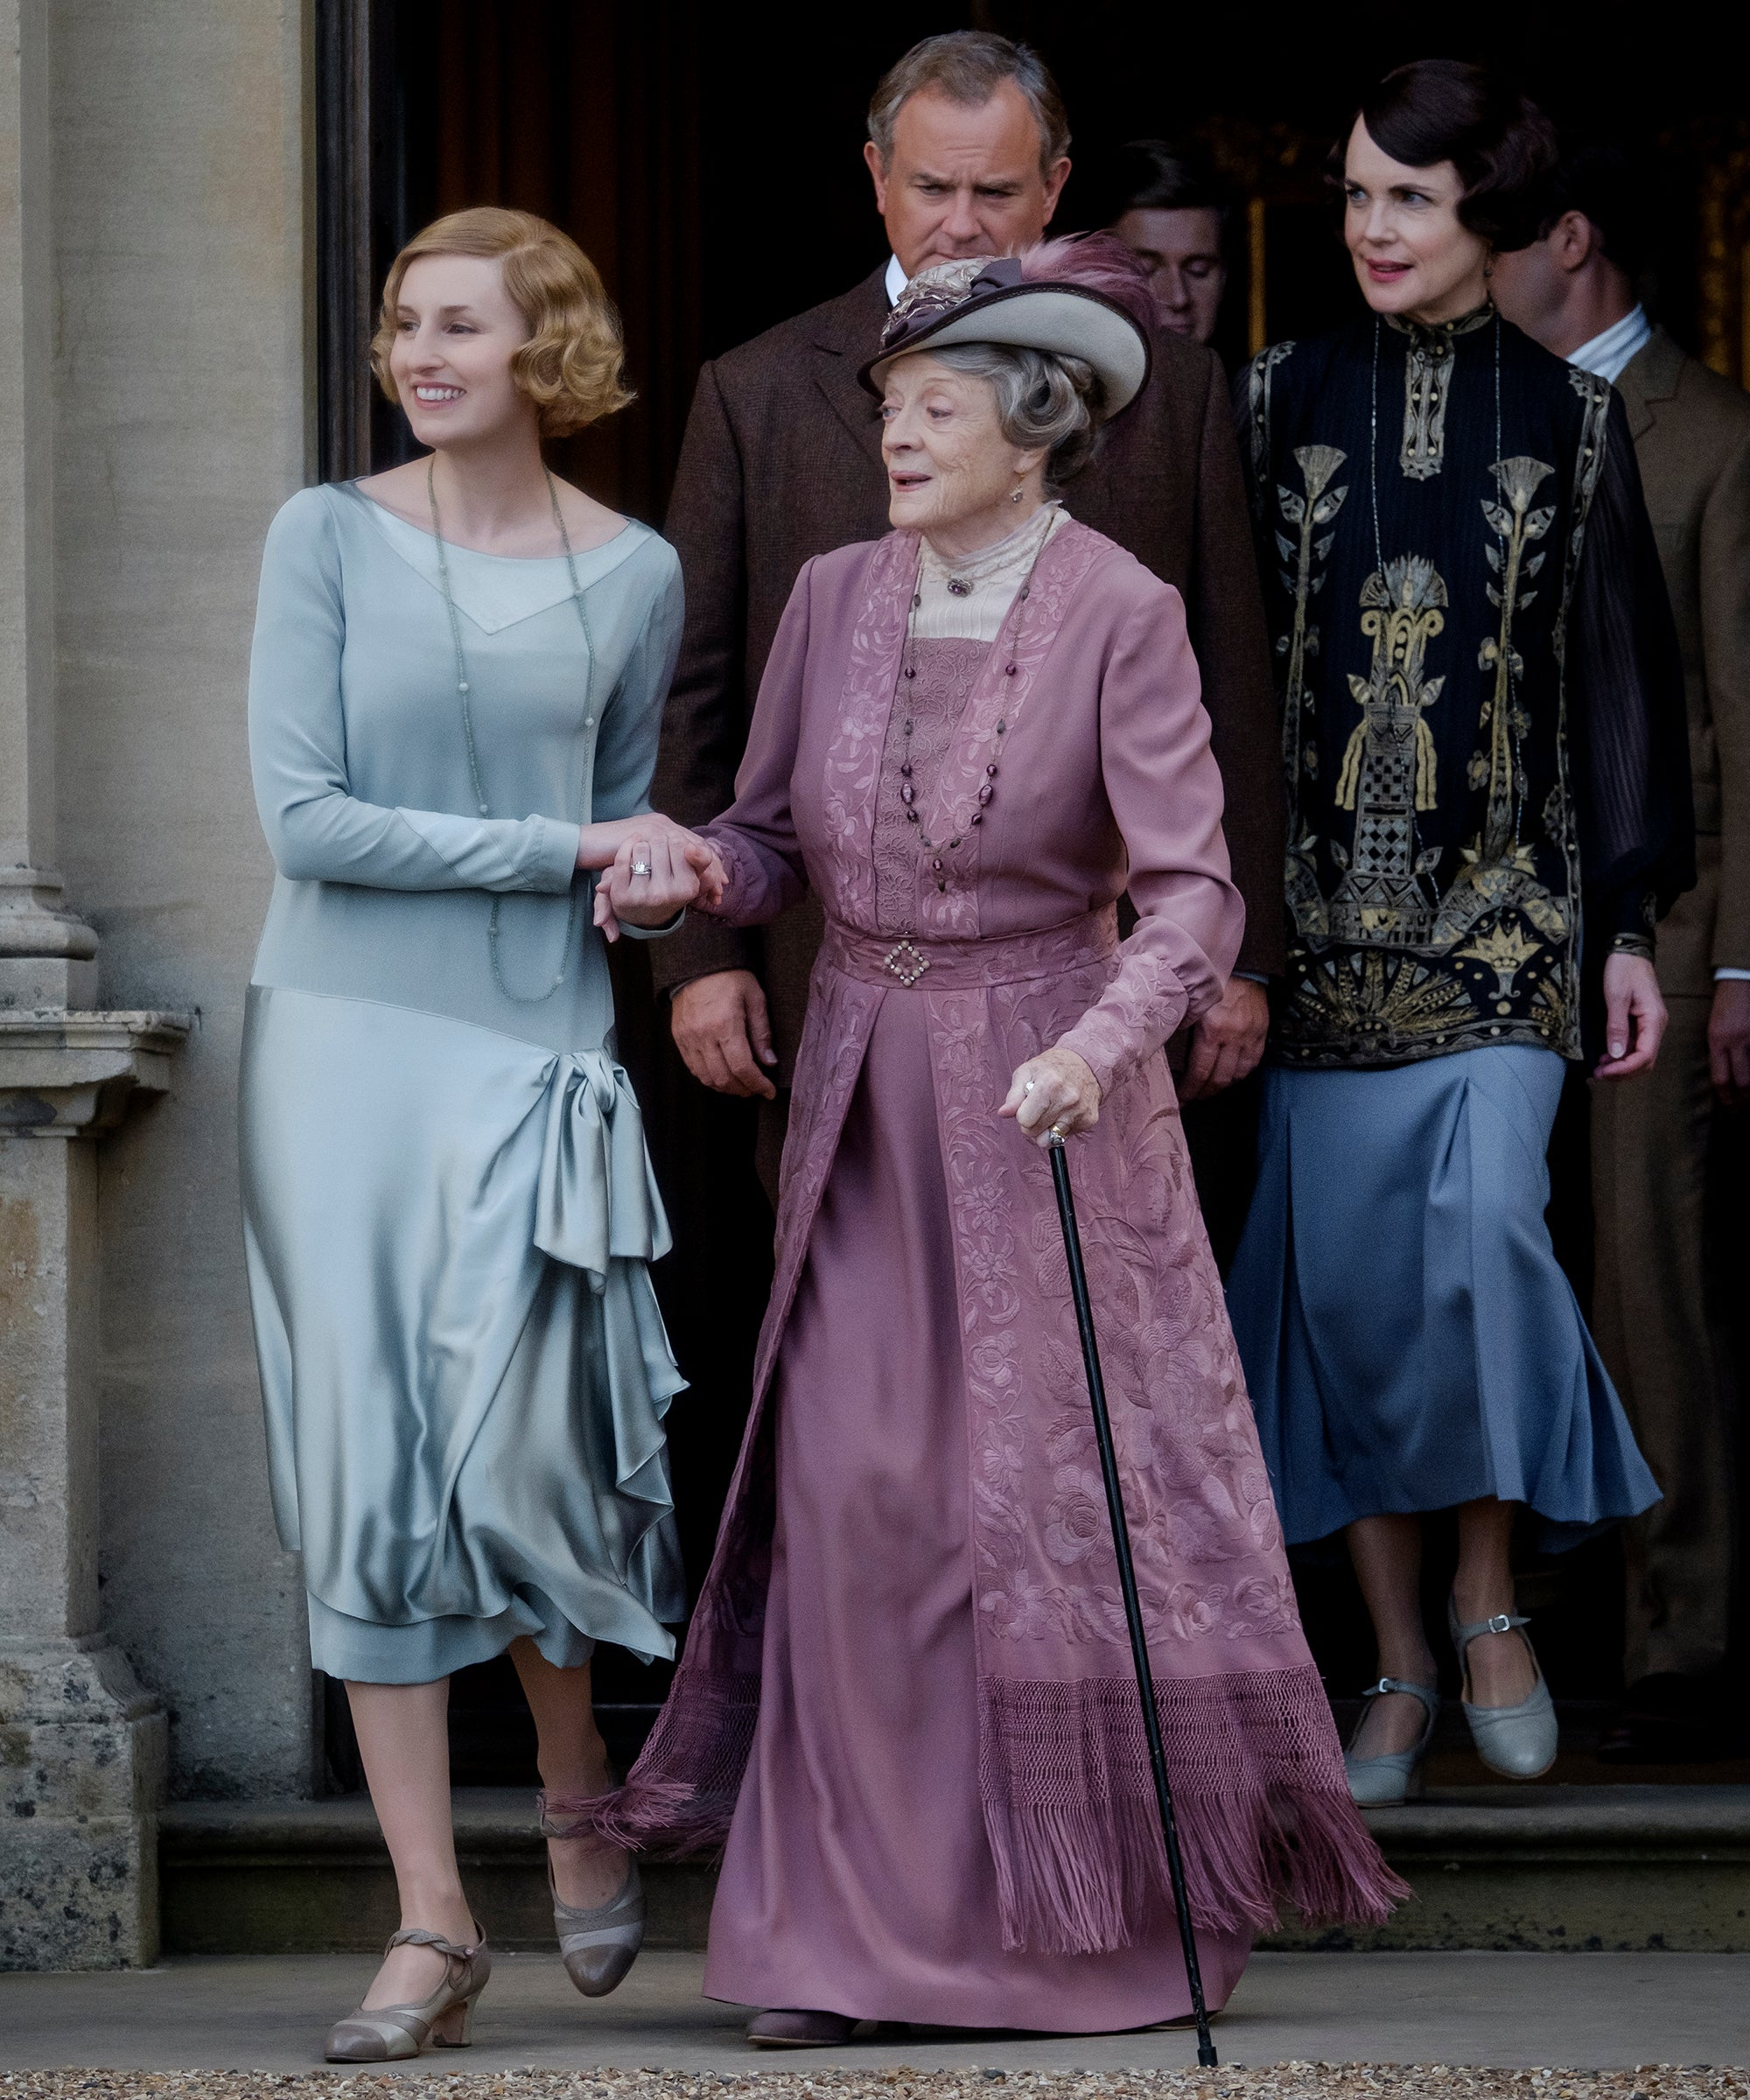 How Much Of The Royal Visit To Downton Abbey Was Based On Real Events?